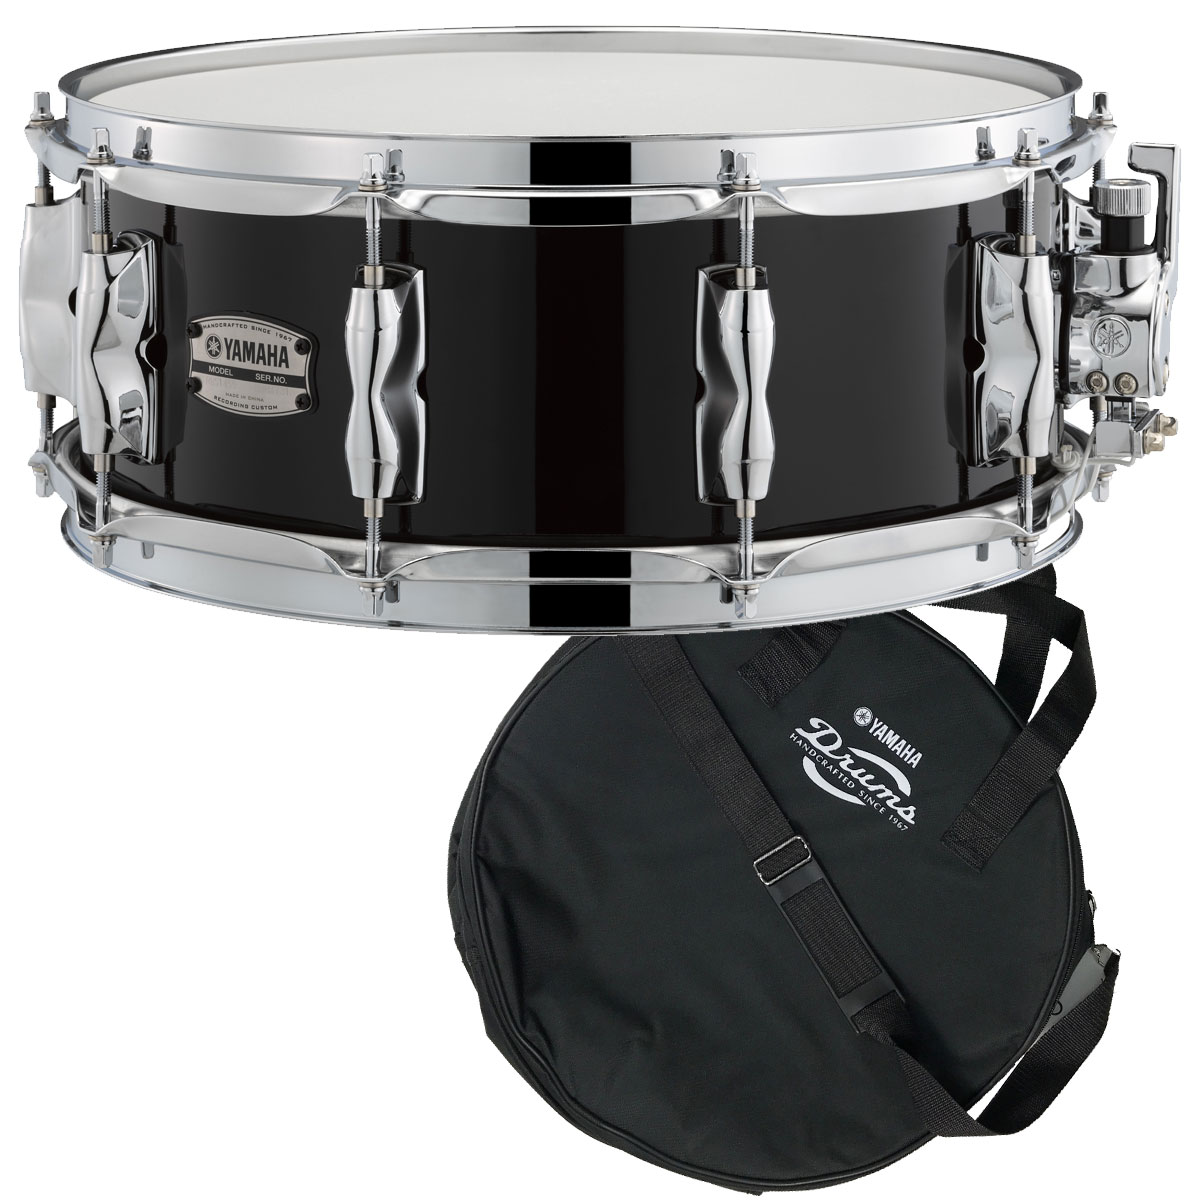 YAMAHA / RBS1455SOB ヤマハ Recording Custom Wood Snare Drum 14x5.5 スネアバッグ付き【YRK】